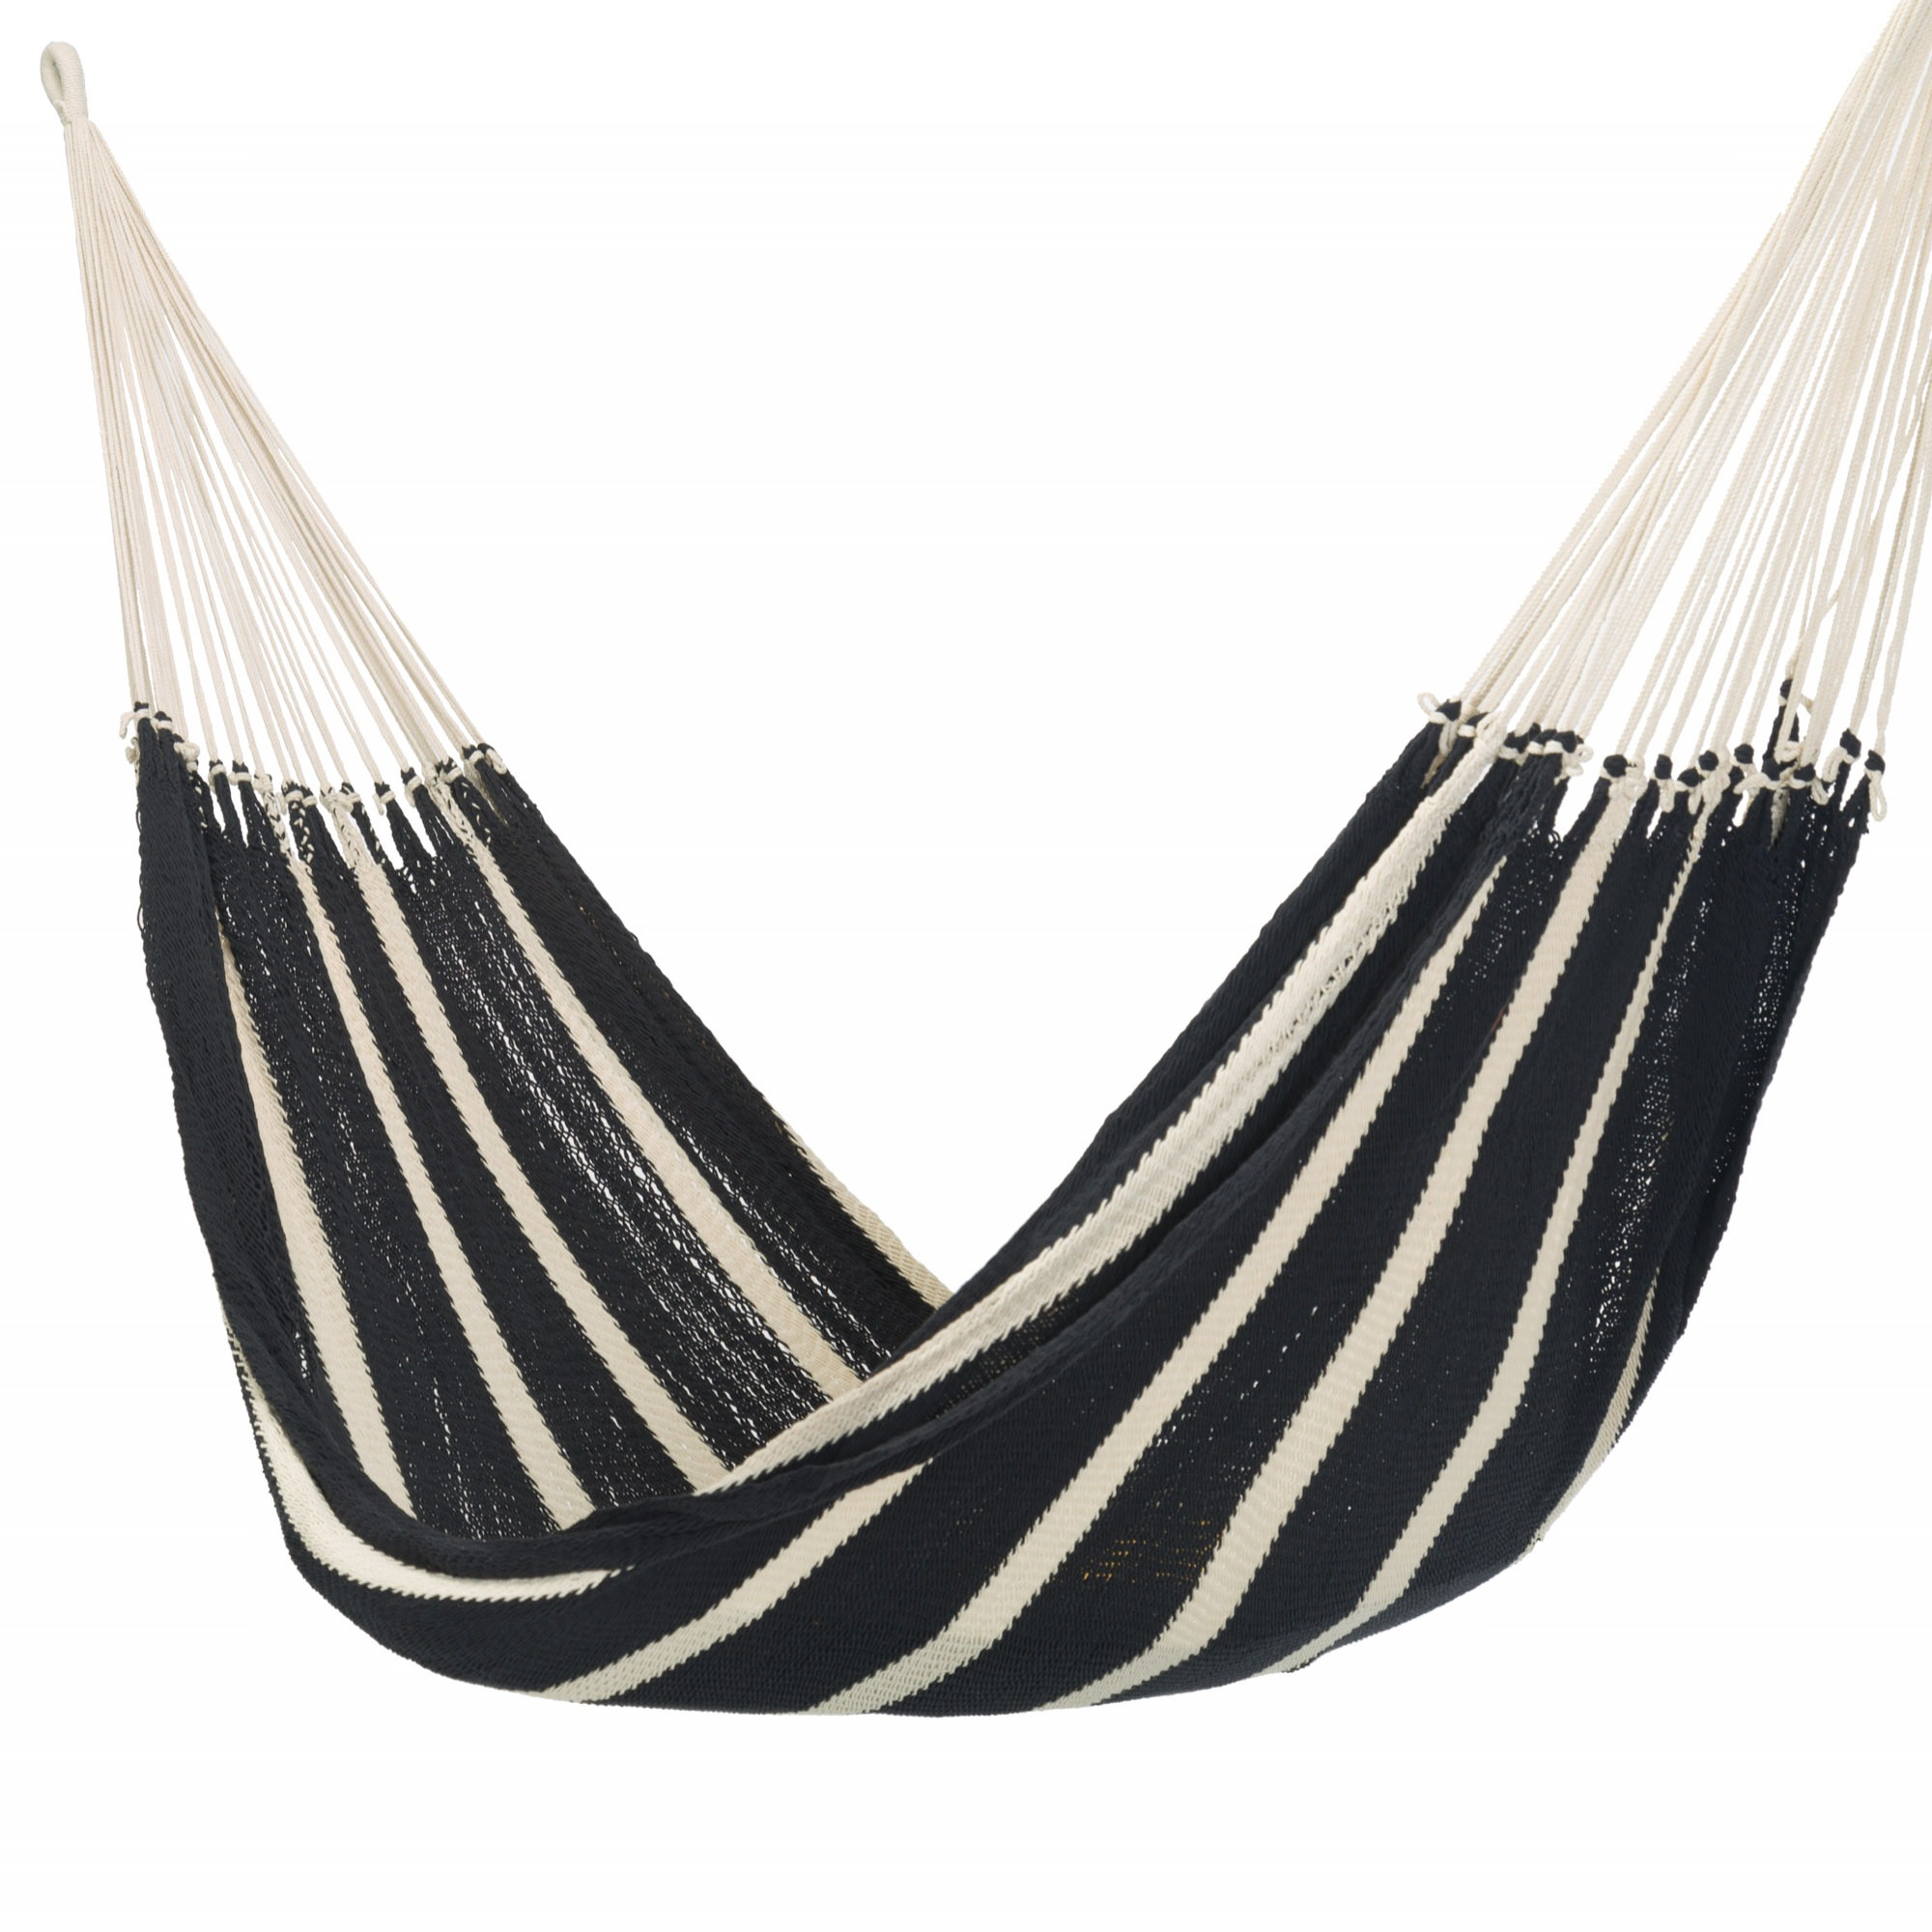 Medium image of mayan crochet hammock   classico